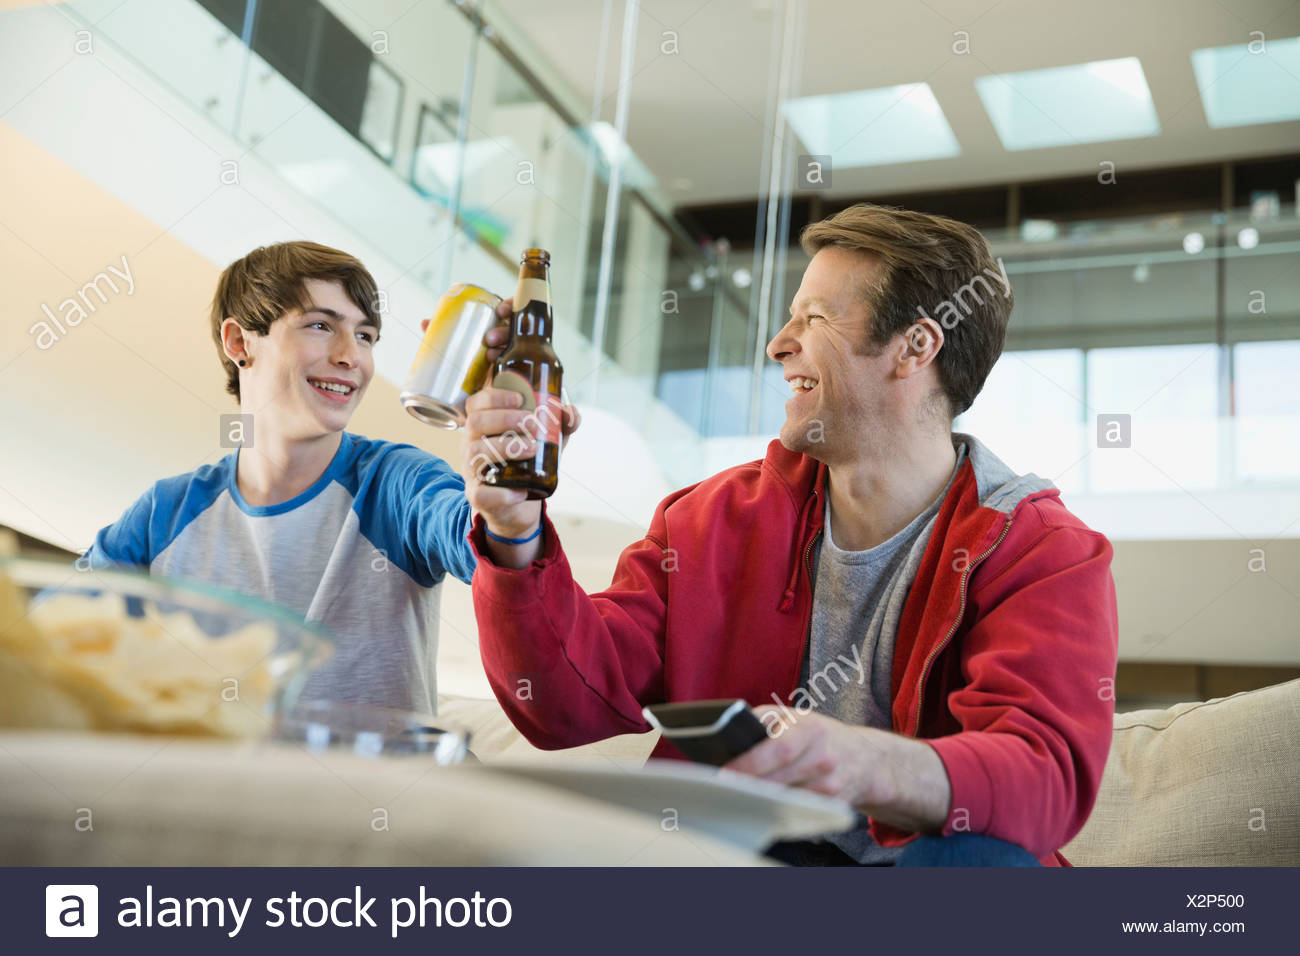 Father and son toasting drinks in living room - Stock Image